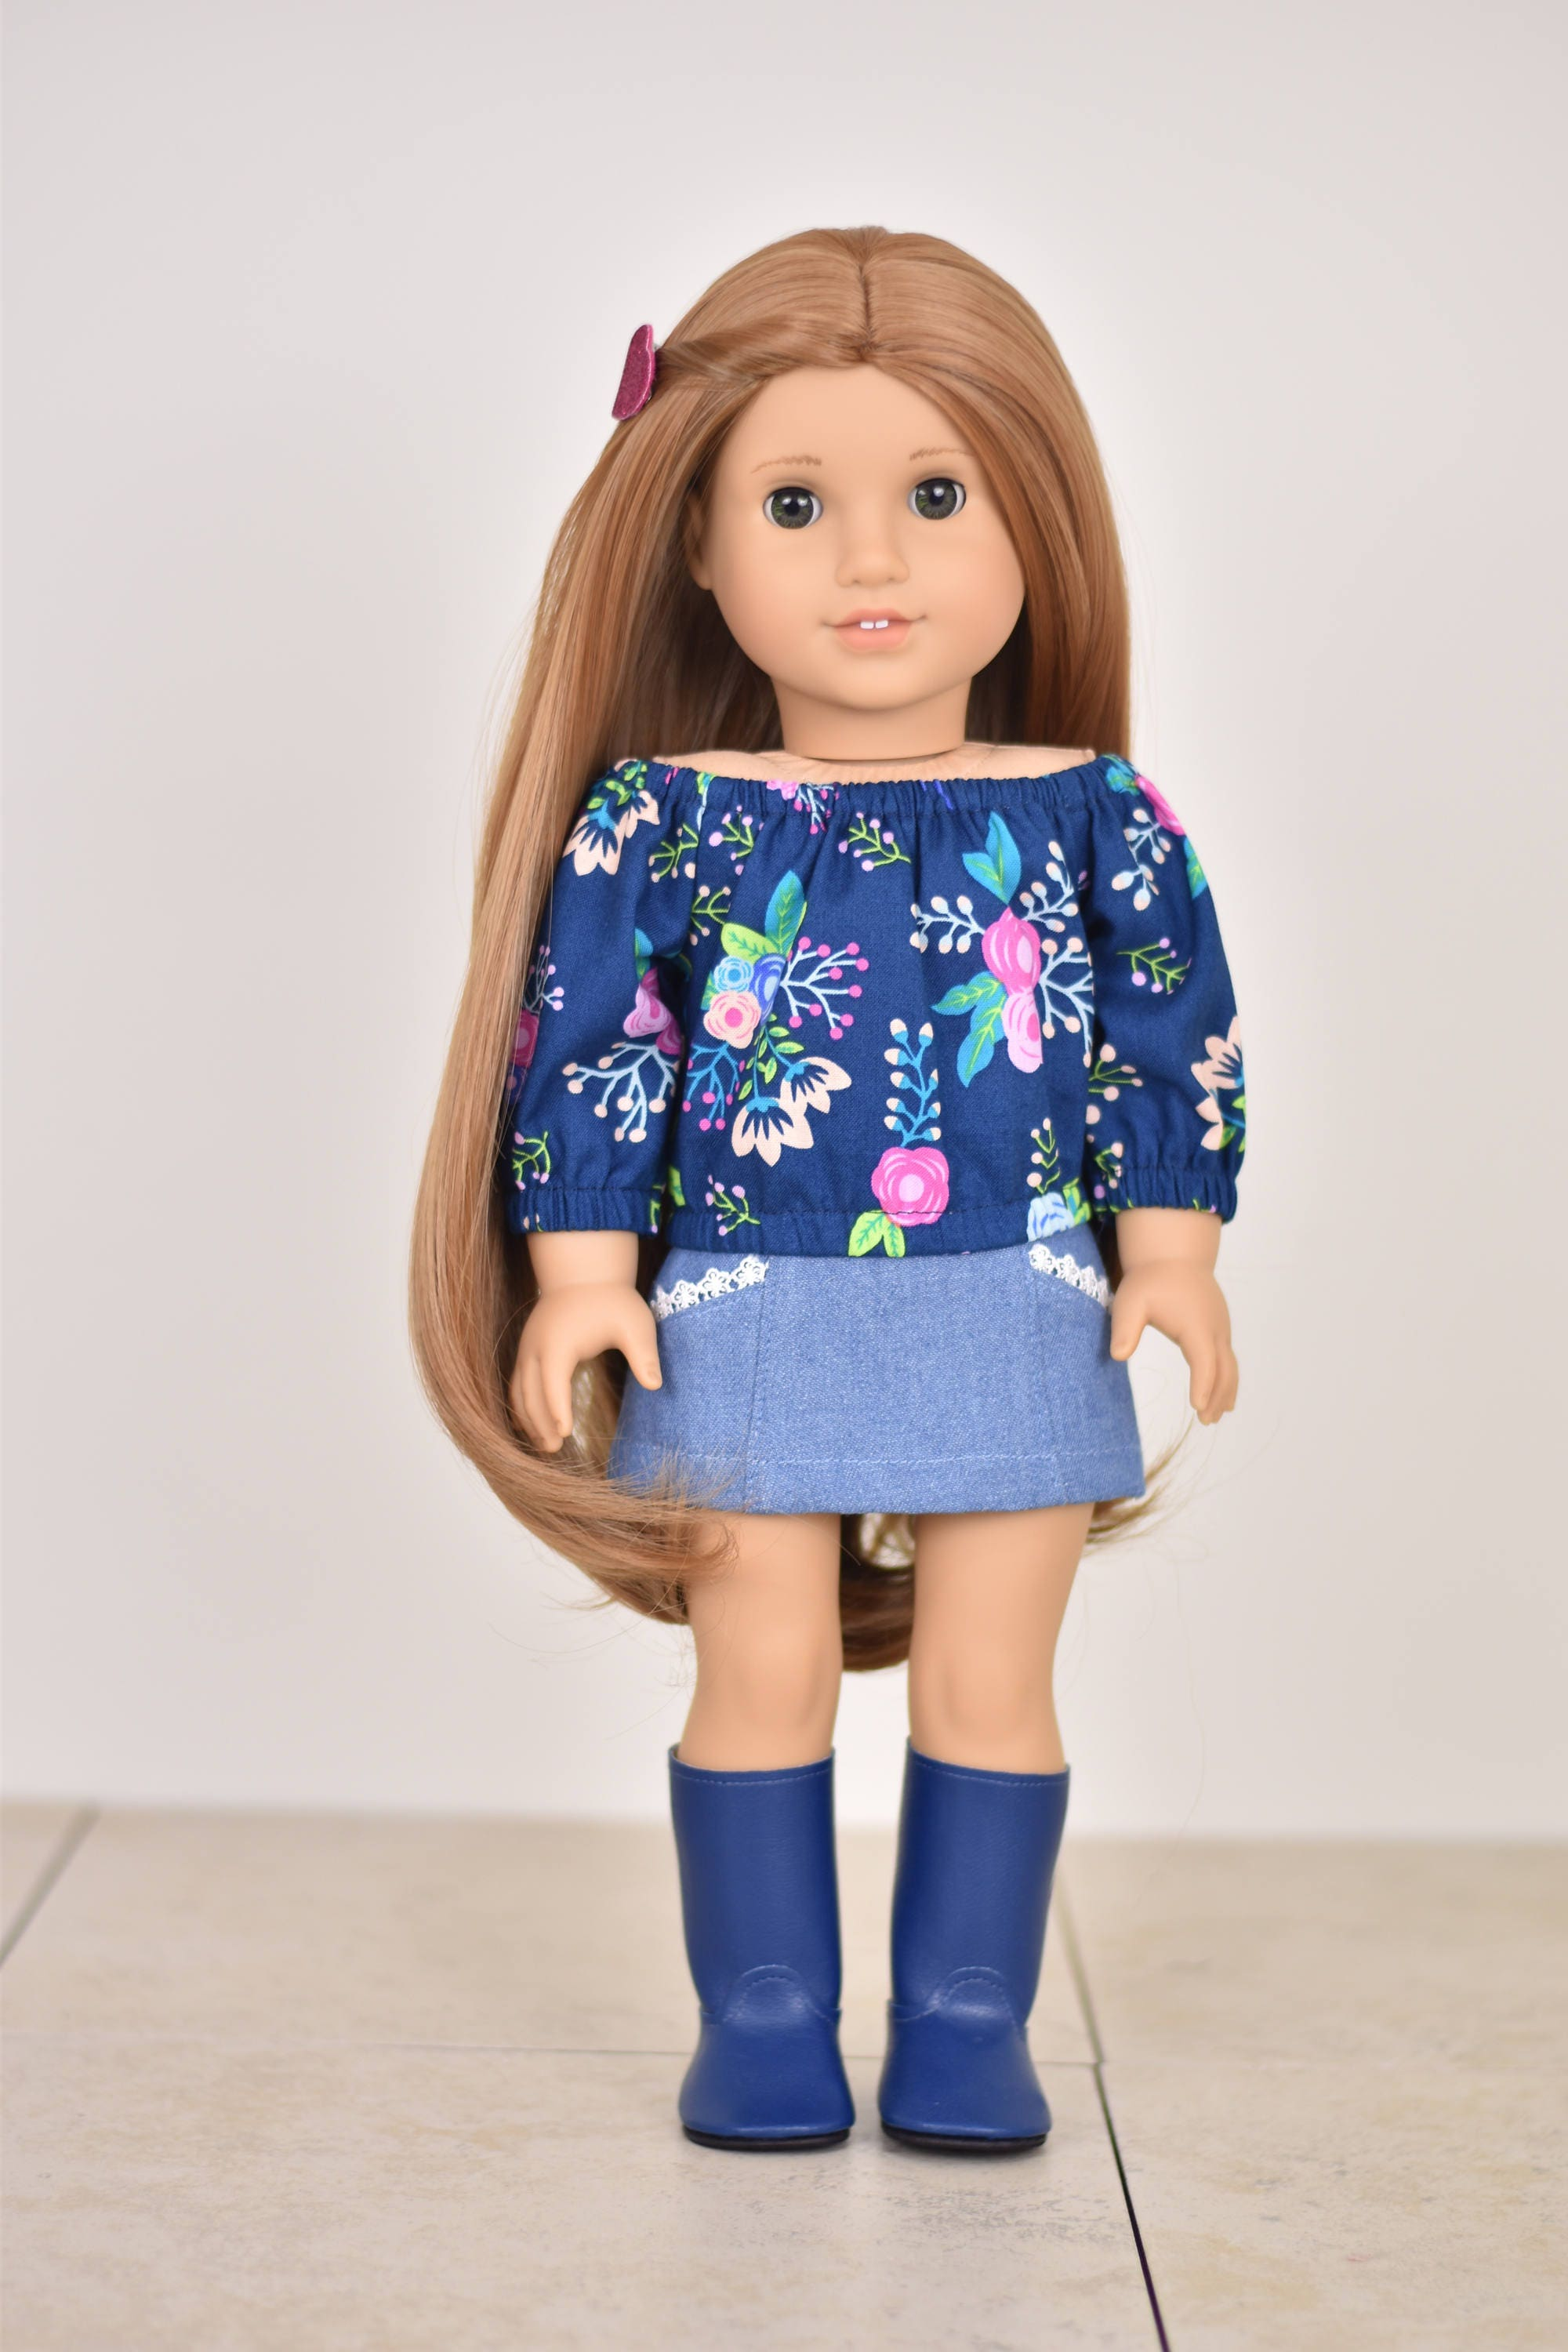 71a86010d629 Taylor Country Top Off The Shoulder Top 18 inch doll clothes EliteDollWorld  EDW